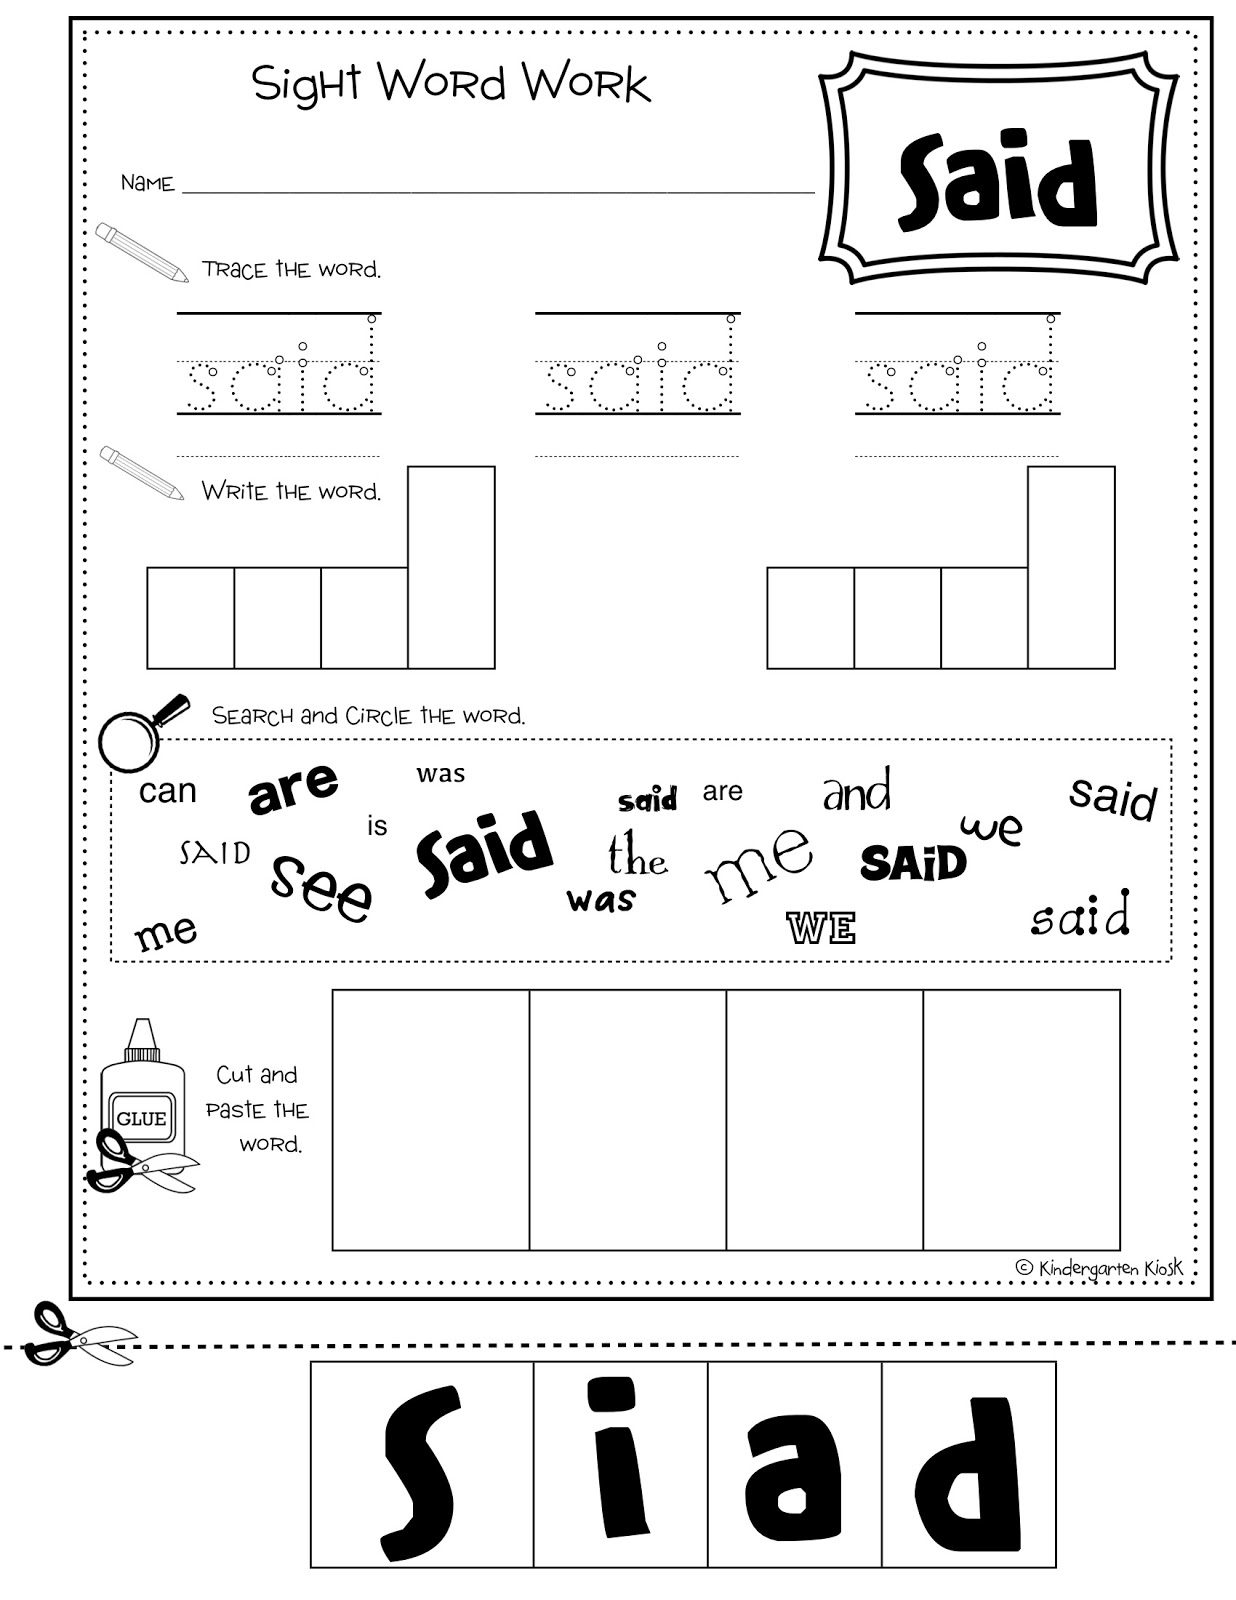 sight Task  word his Multi Workbook Kiosk: worksheet Word Kindergarten Sight